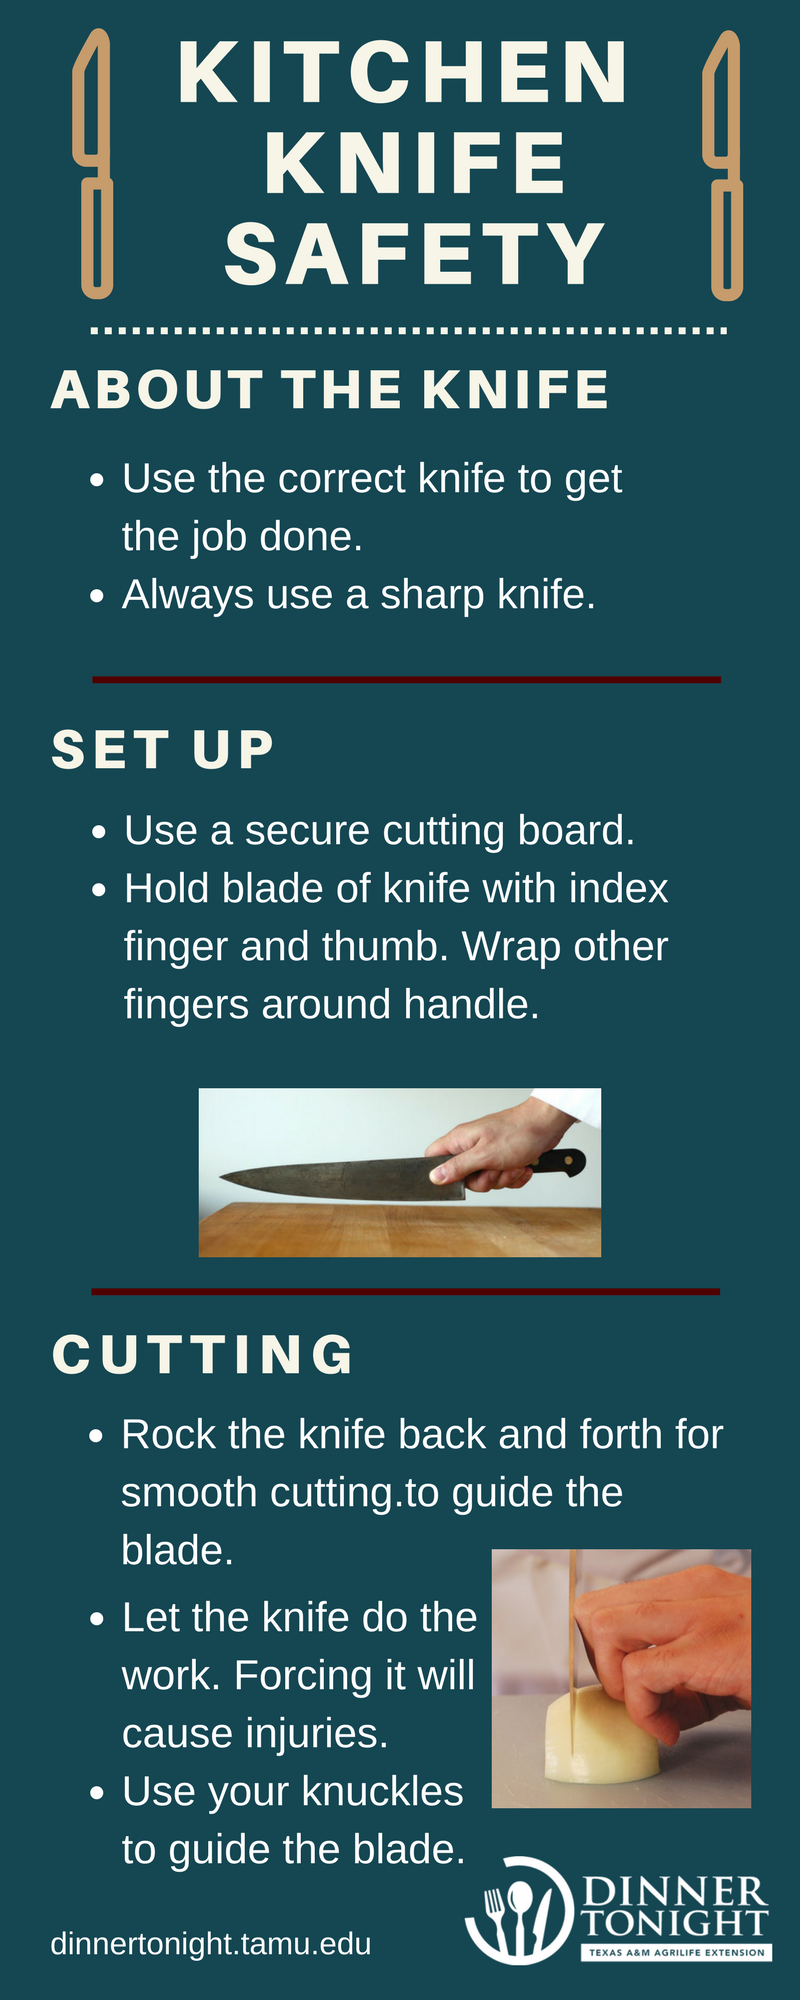 kitchen-knife-safety-infographic | Dinner Tonight